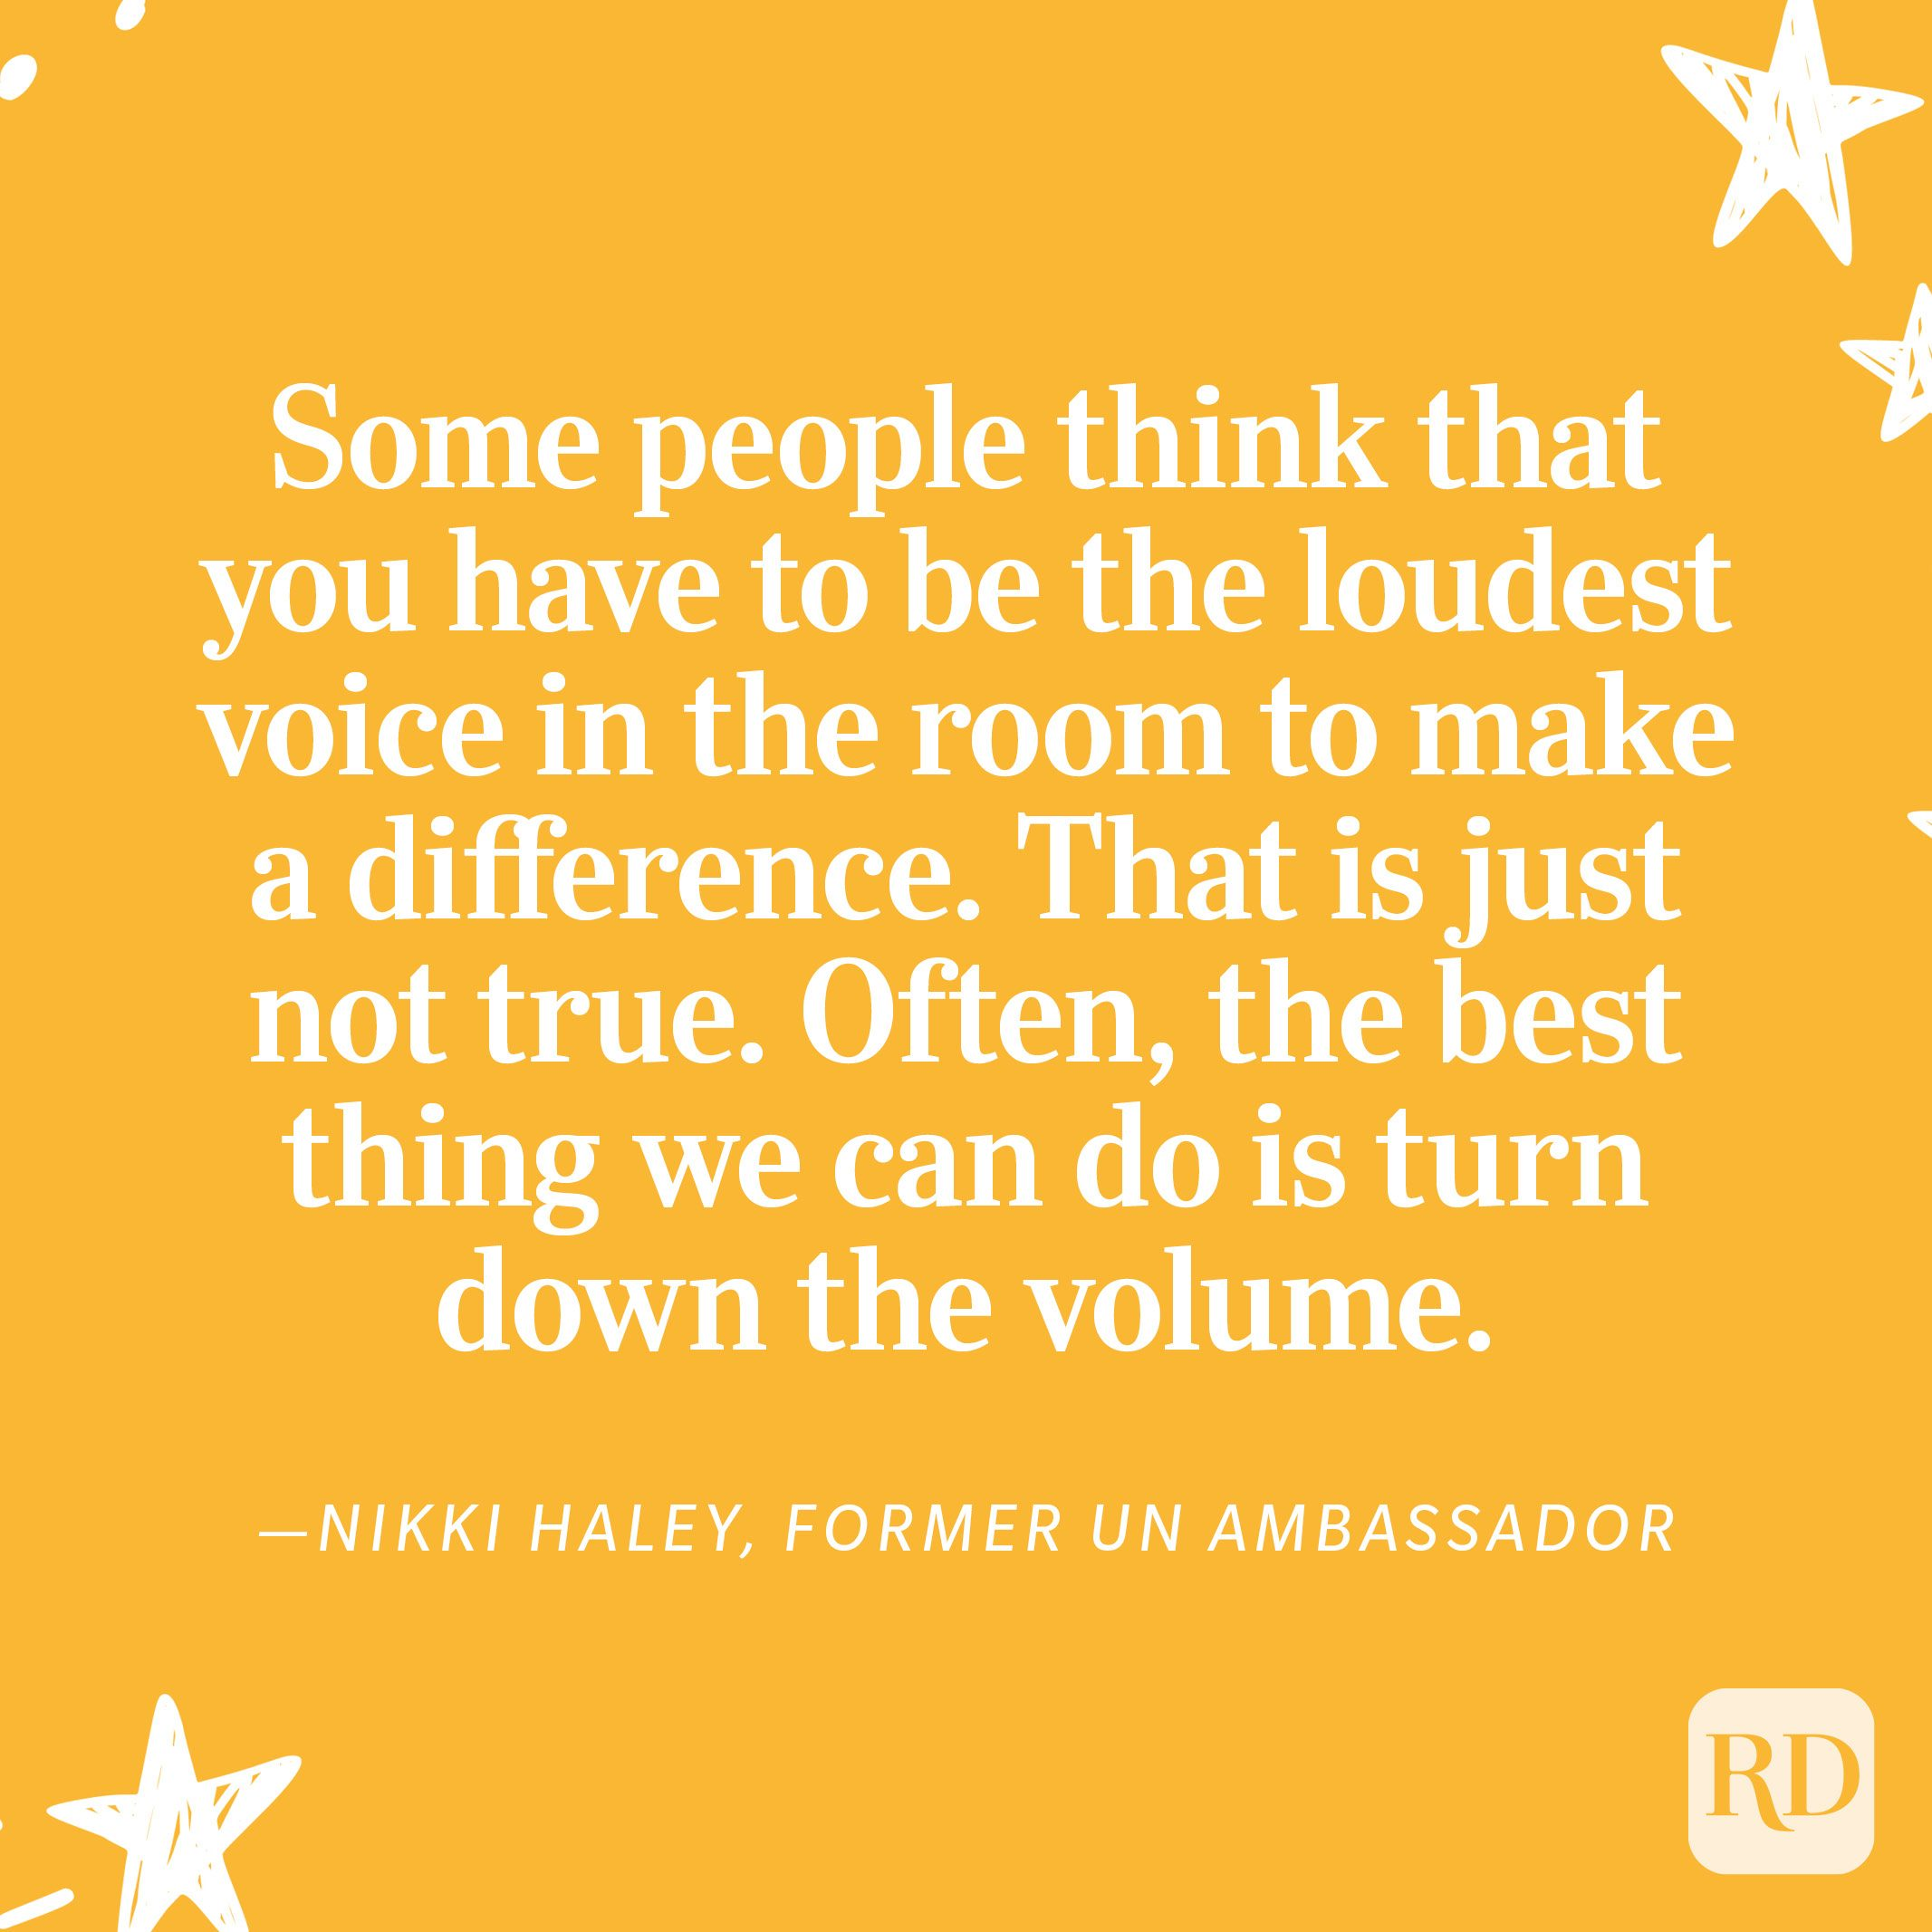 """""""Some people think that you have to be the loudest voice in the room to make a difference. That is just not true. Often, the best thing we can do is turn down the volume. When the sound is quieter, you can actually hear what someone else is saying. And that can make a world of difference."""" —Nikki Haley, former UN Ambassador"""